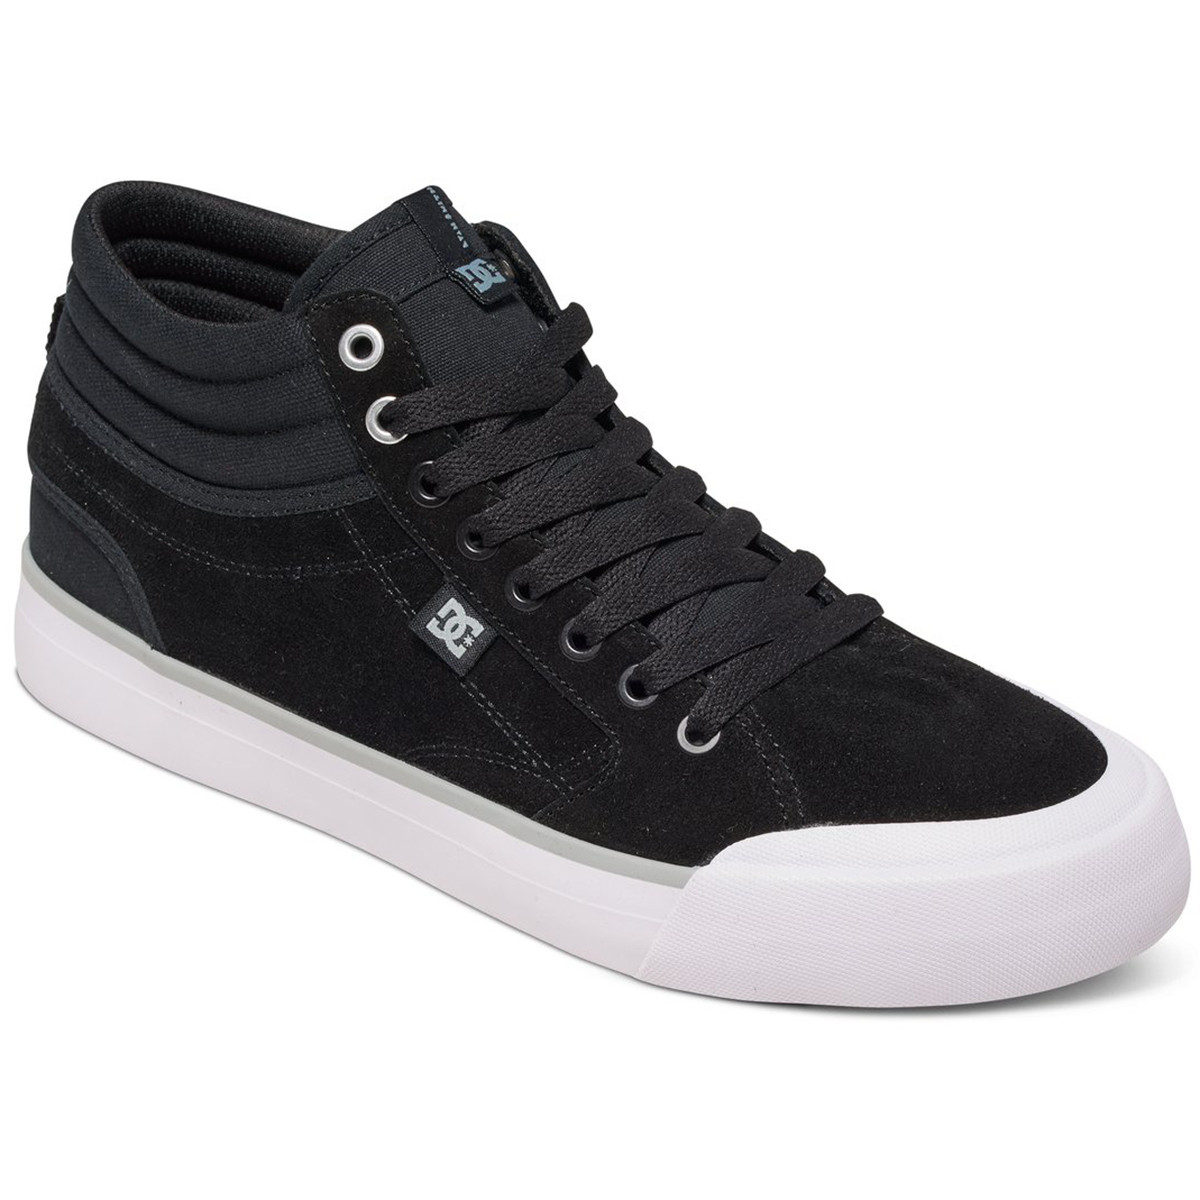 DC Shoes Evan Smith Hi Chaussure Homme Noir Taille 42.5 I3zvGF